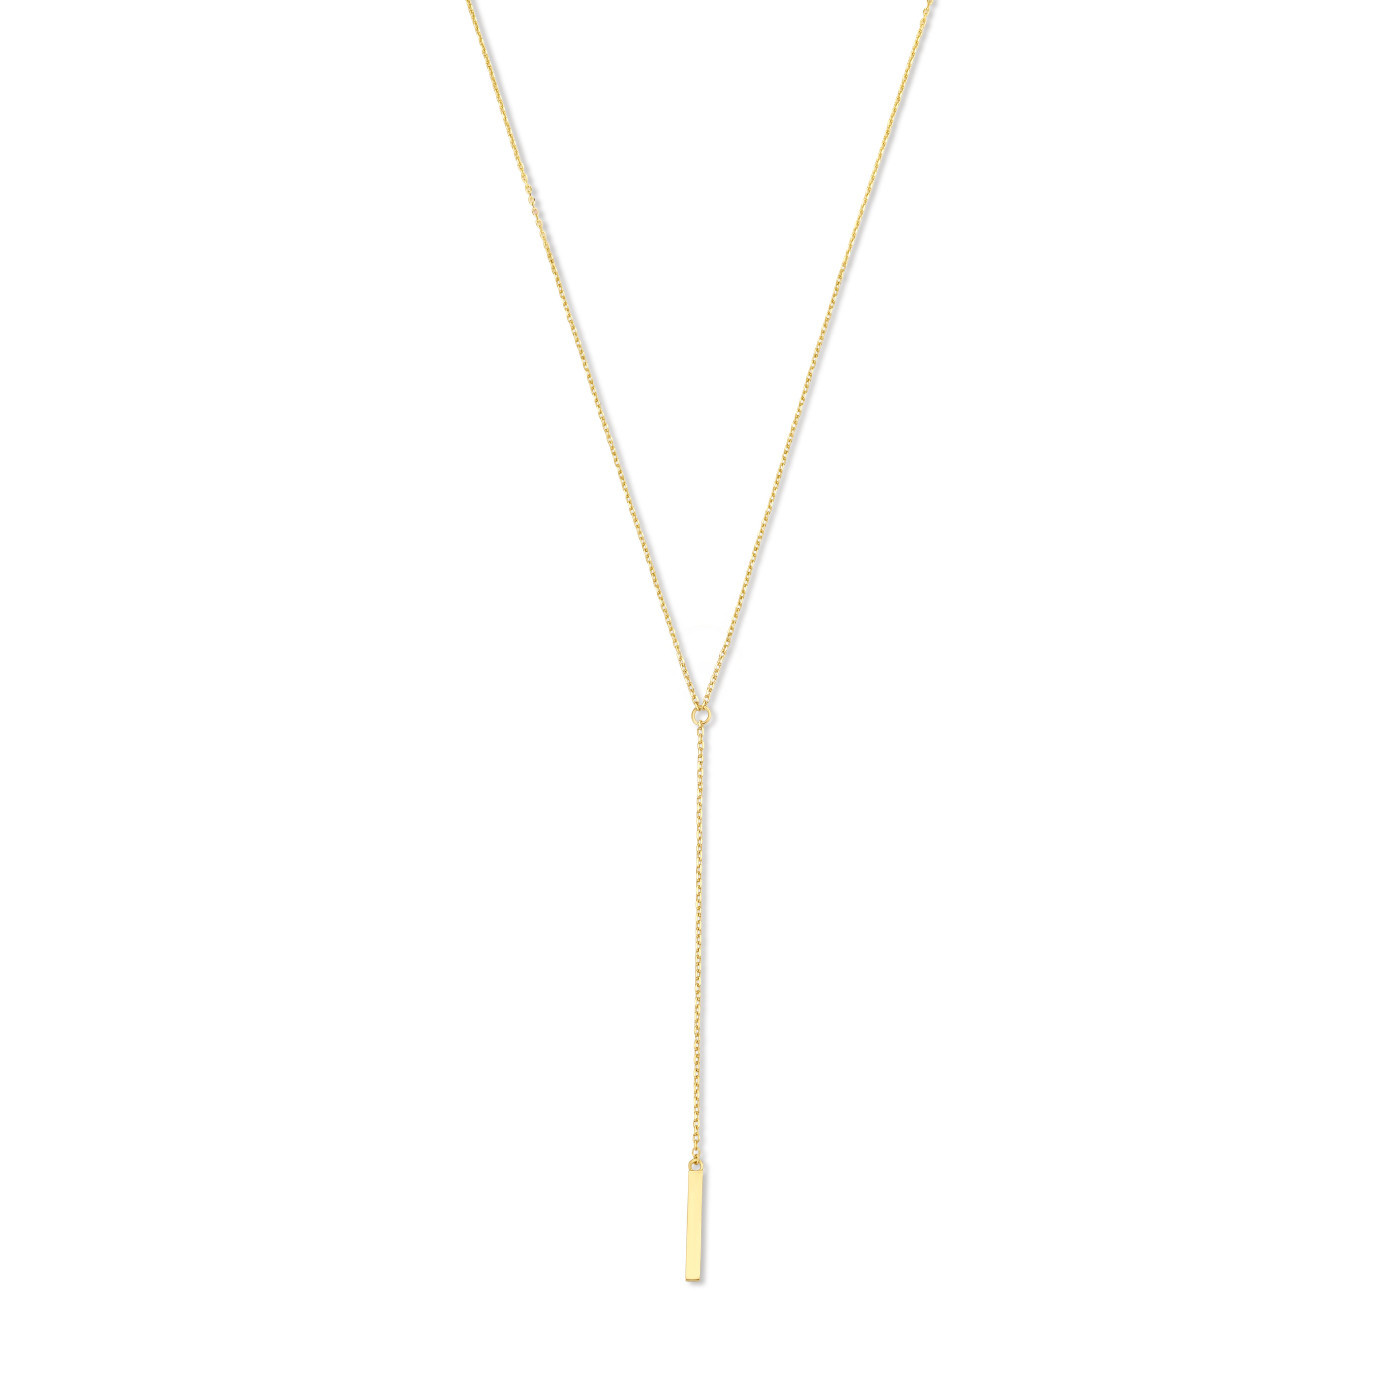 Isabel Bernard Le Marais Dauphine 14 karat gold necklace with rods